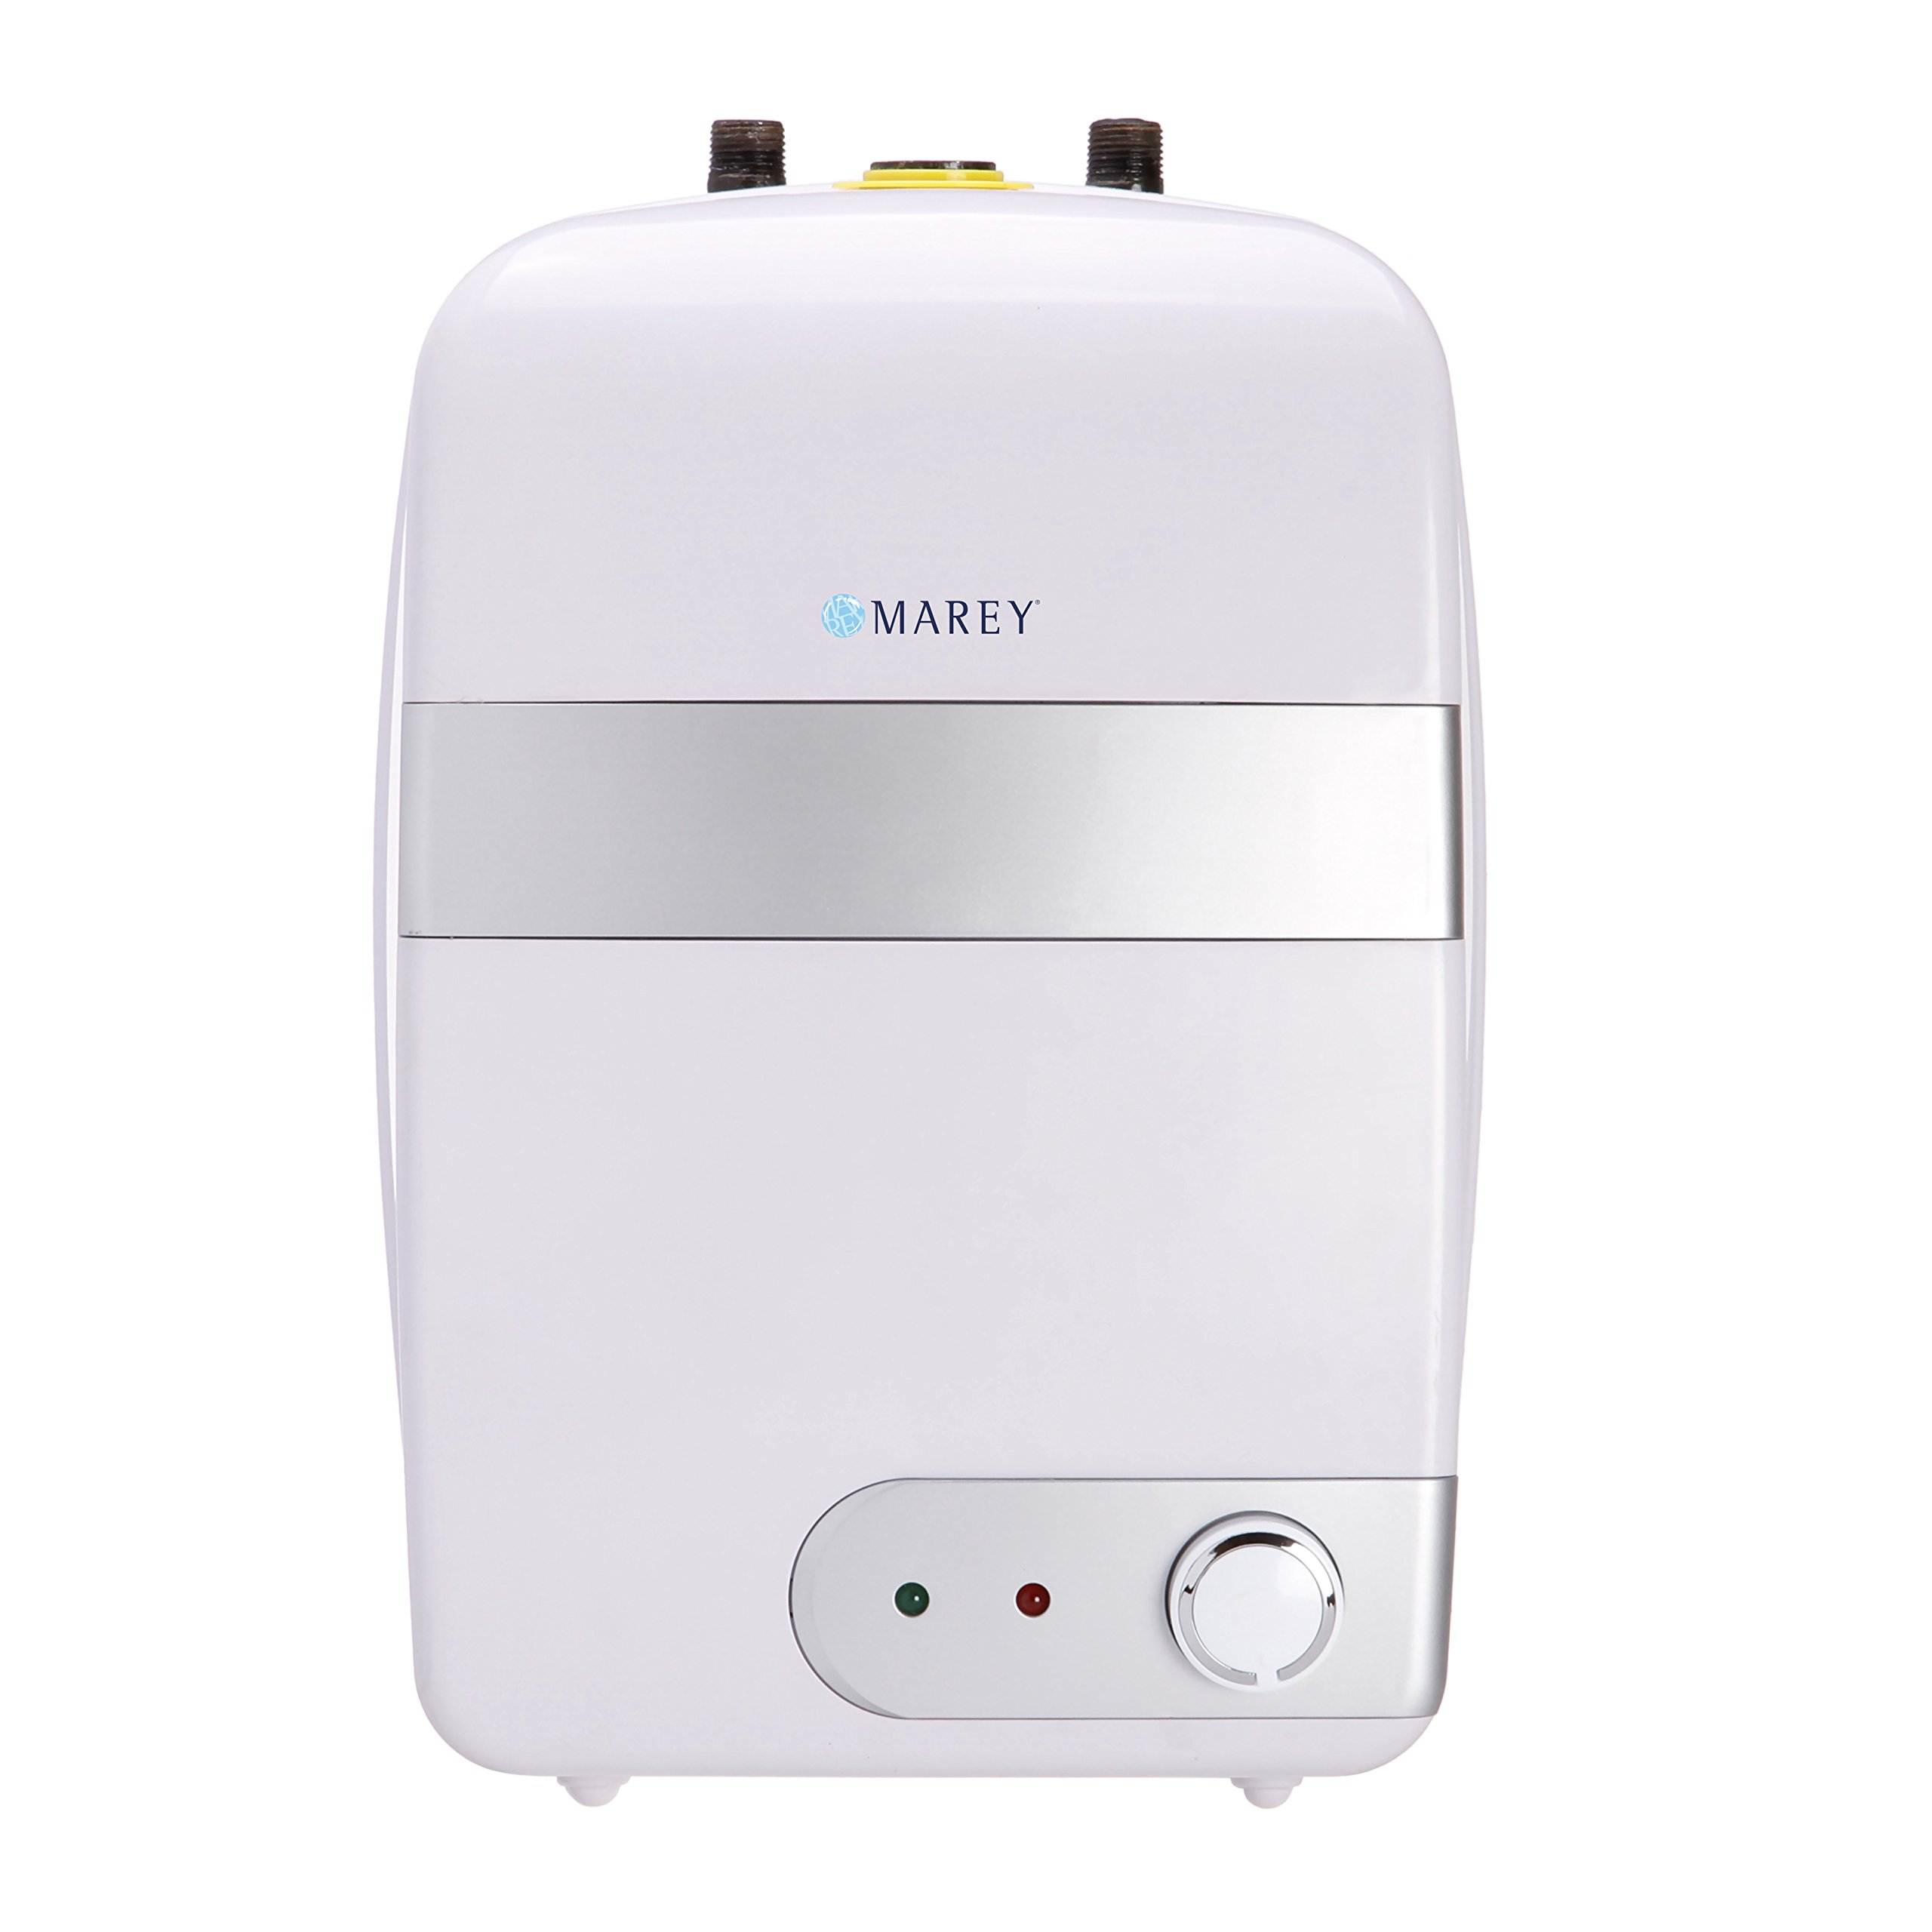 Marey TANK10L Mini Tank, 2.5 gallon/Small, White